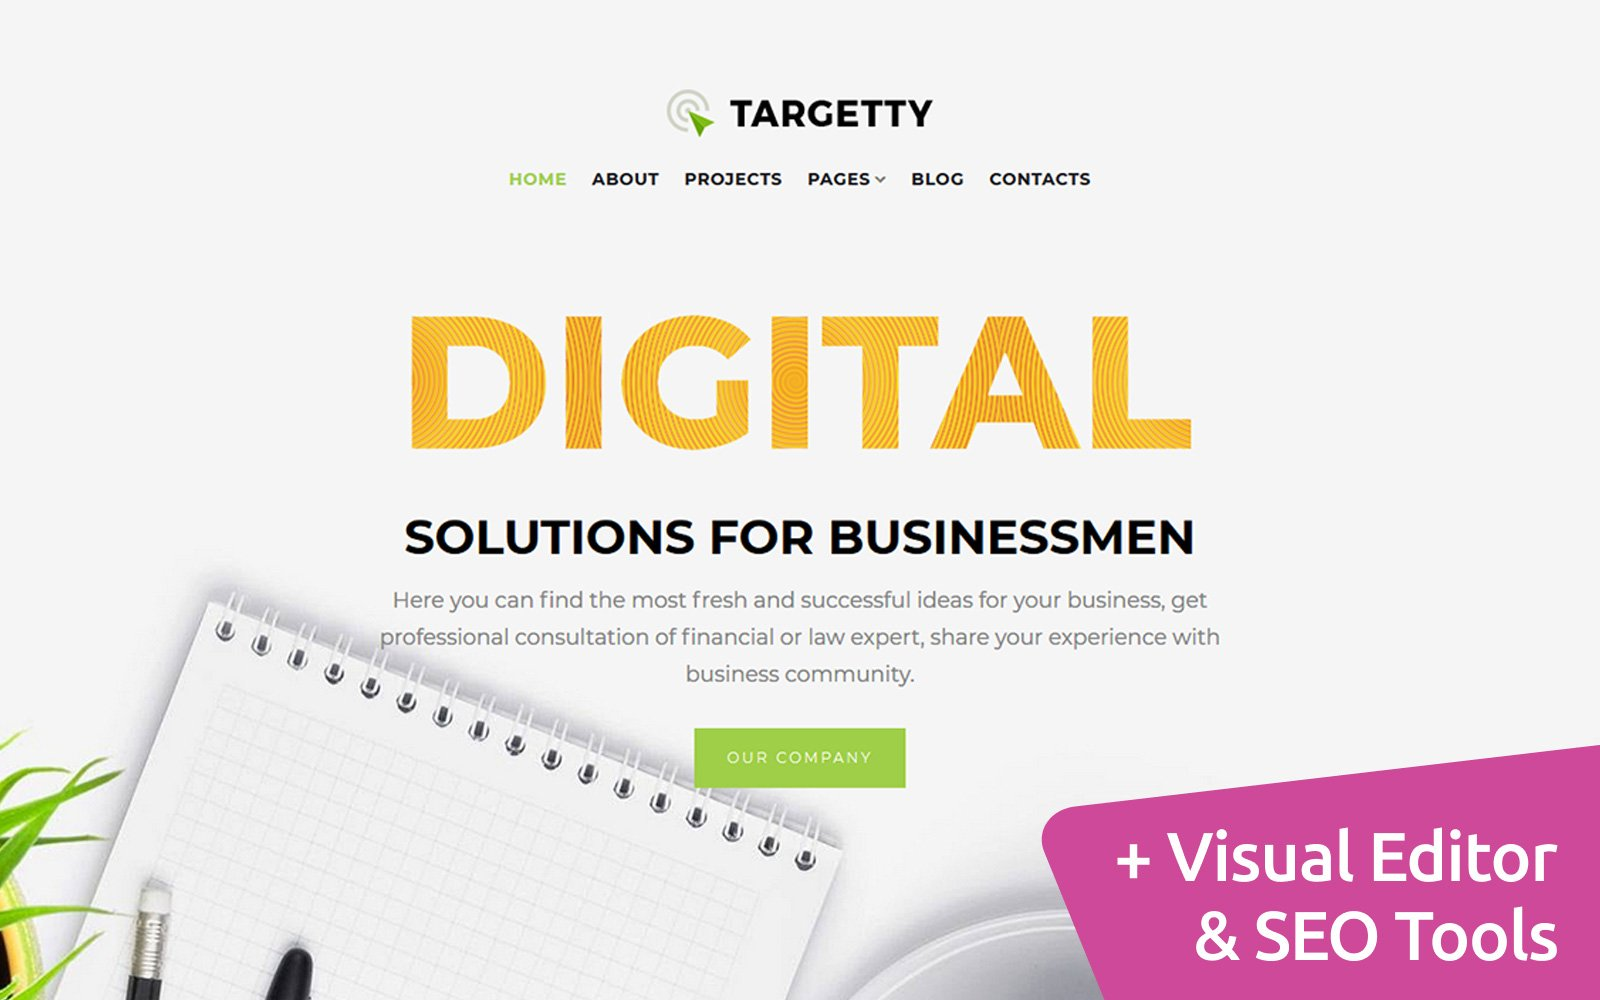 Targetty - Fancy Advertising Agency Templates Moto CMS 3 №122667